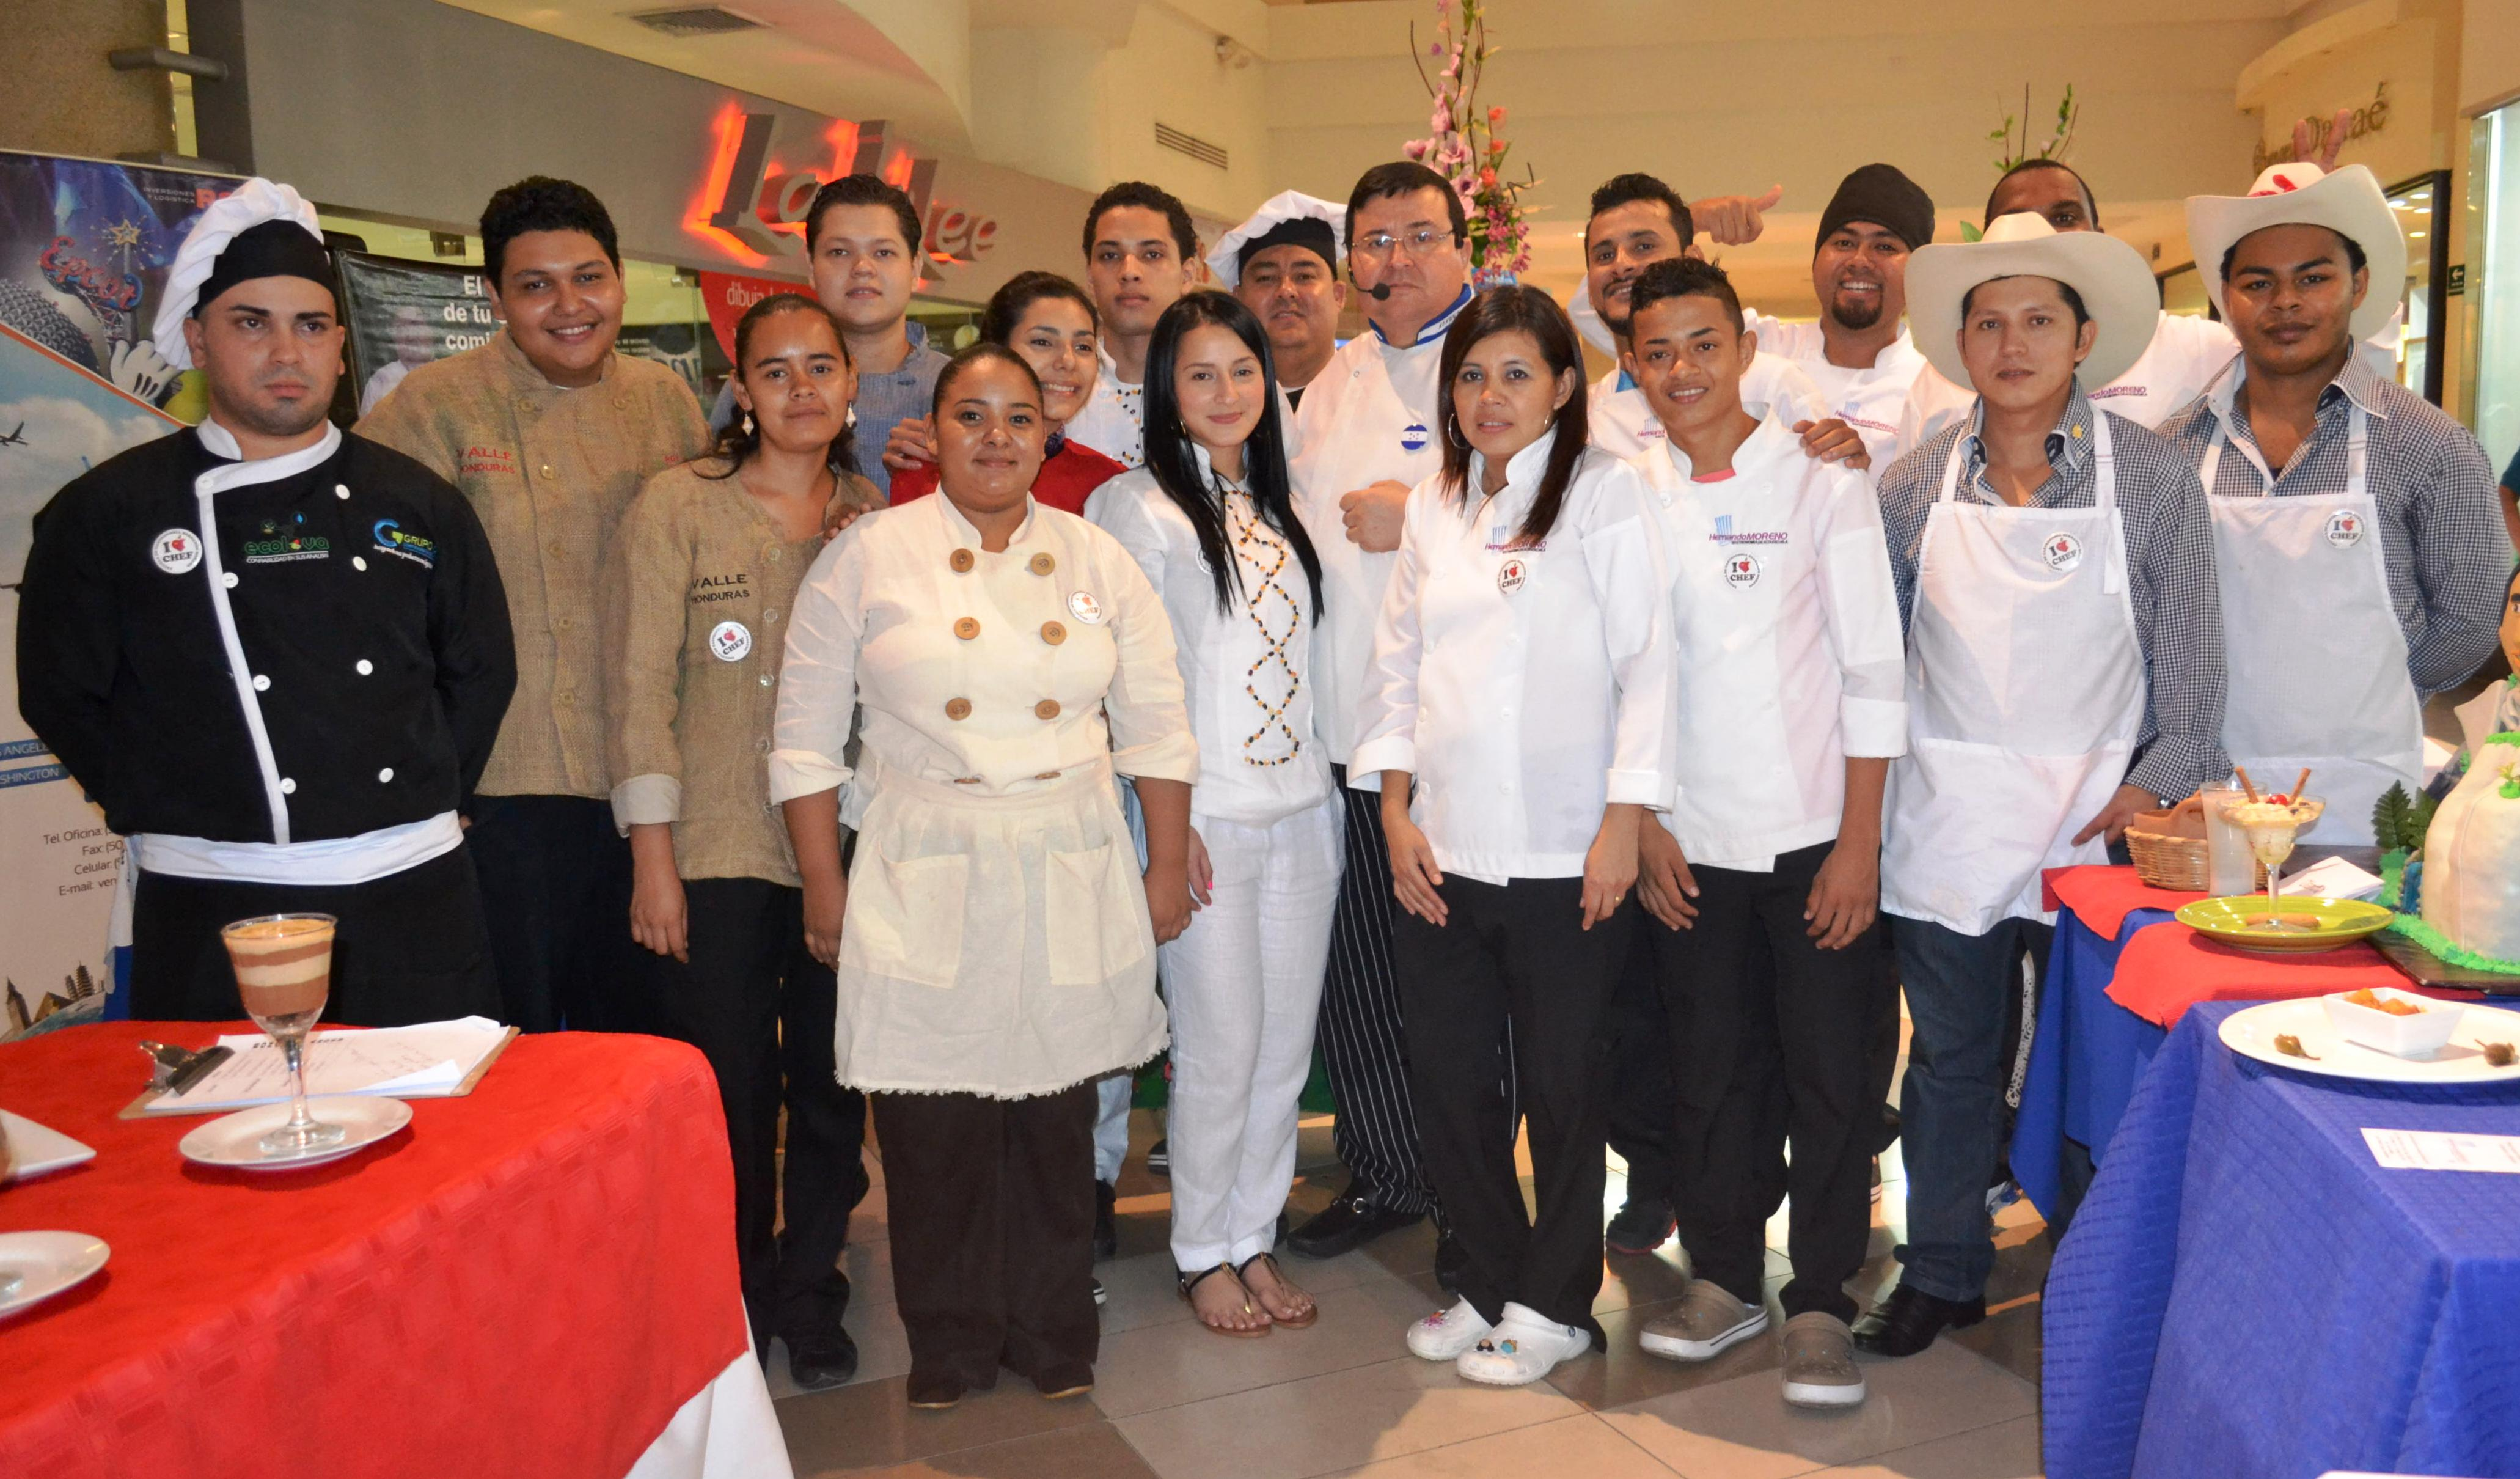 Top chef Honduras 2013